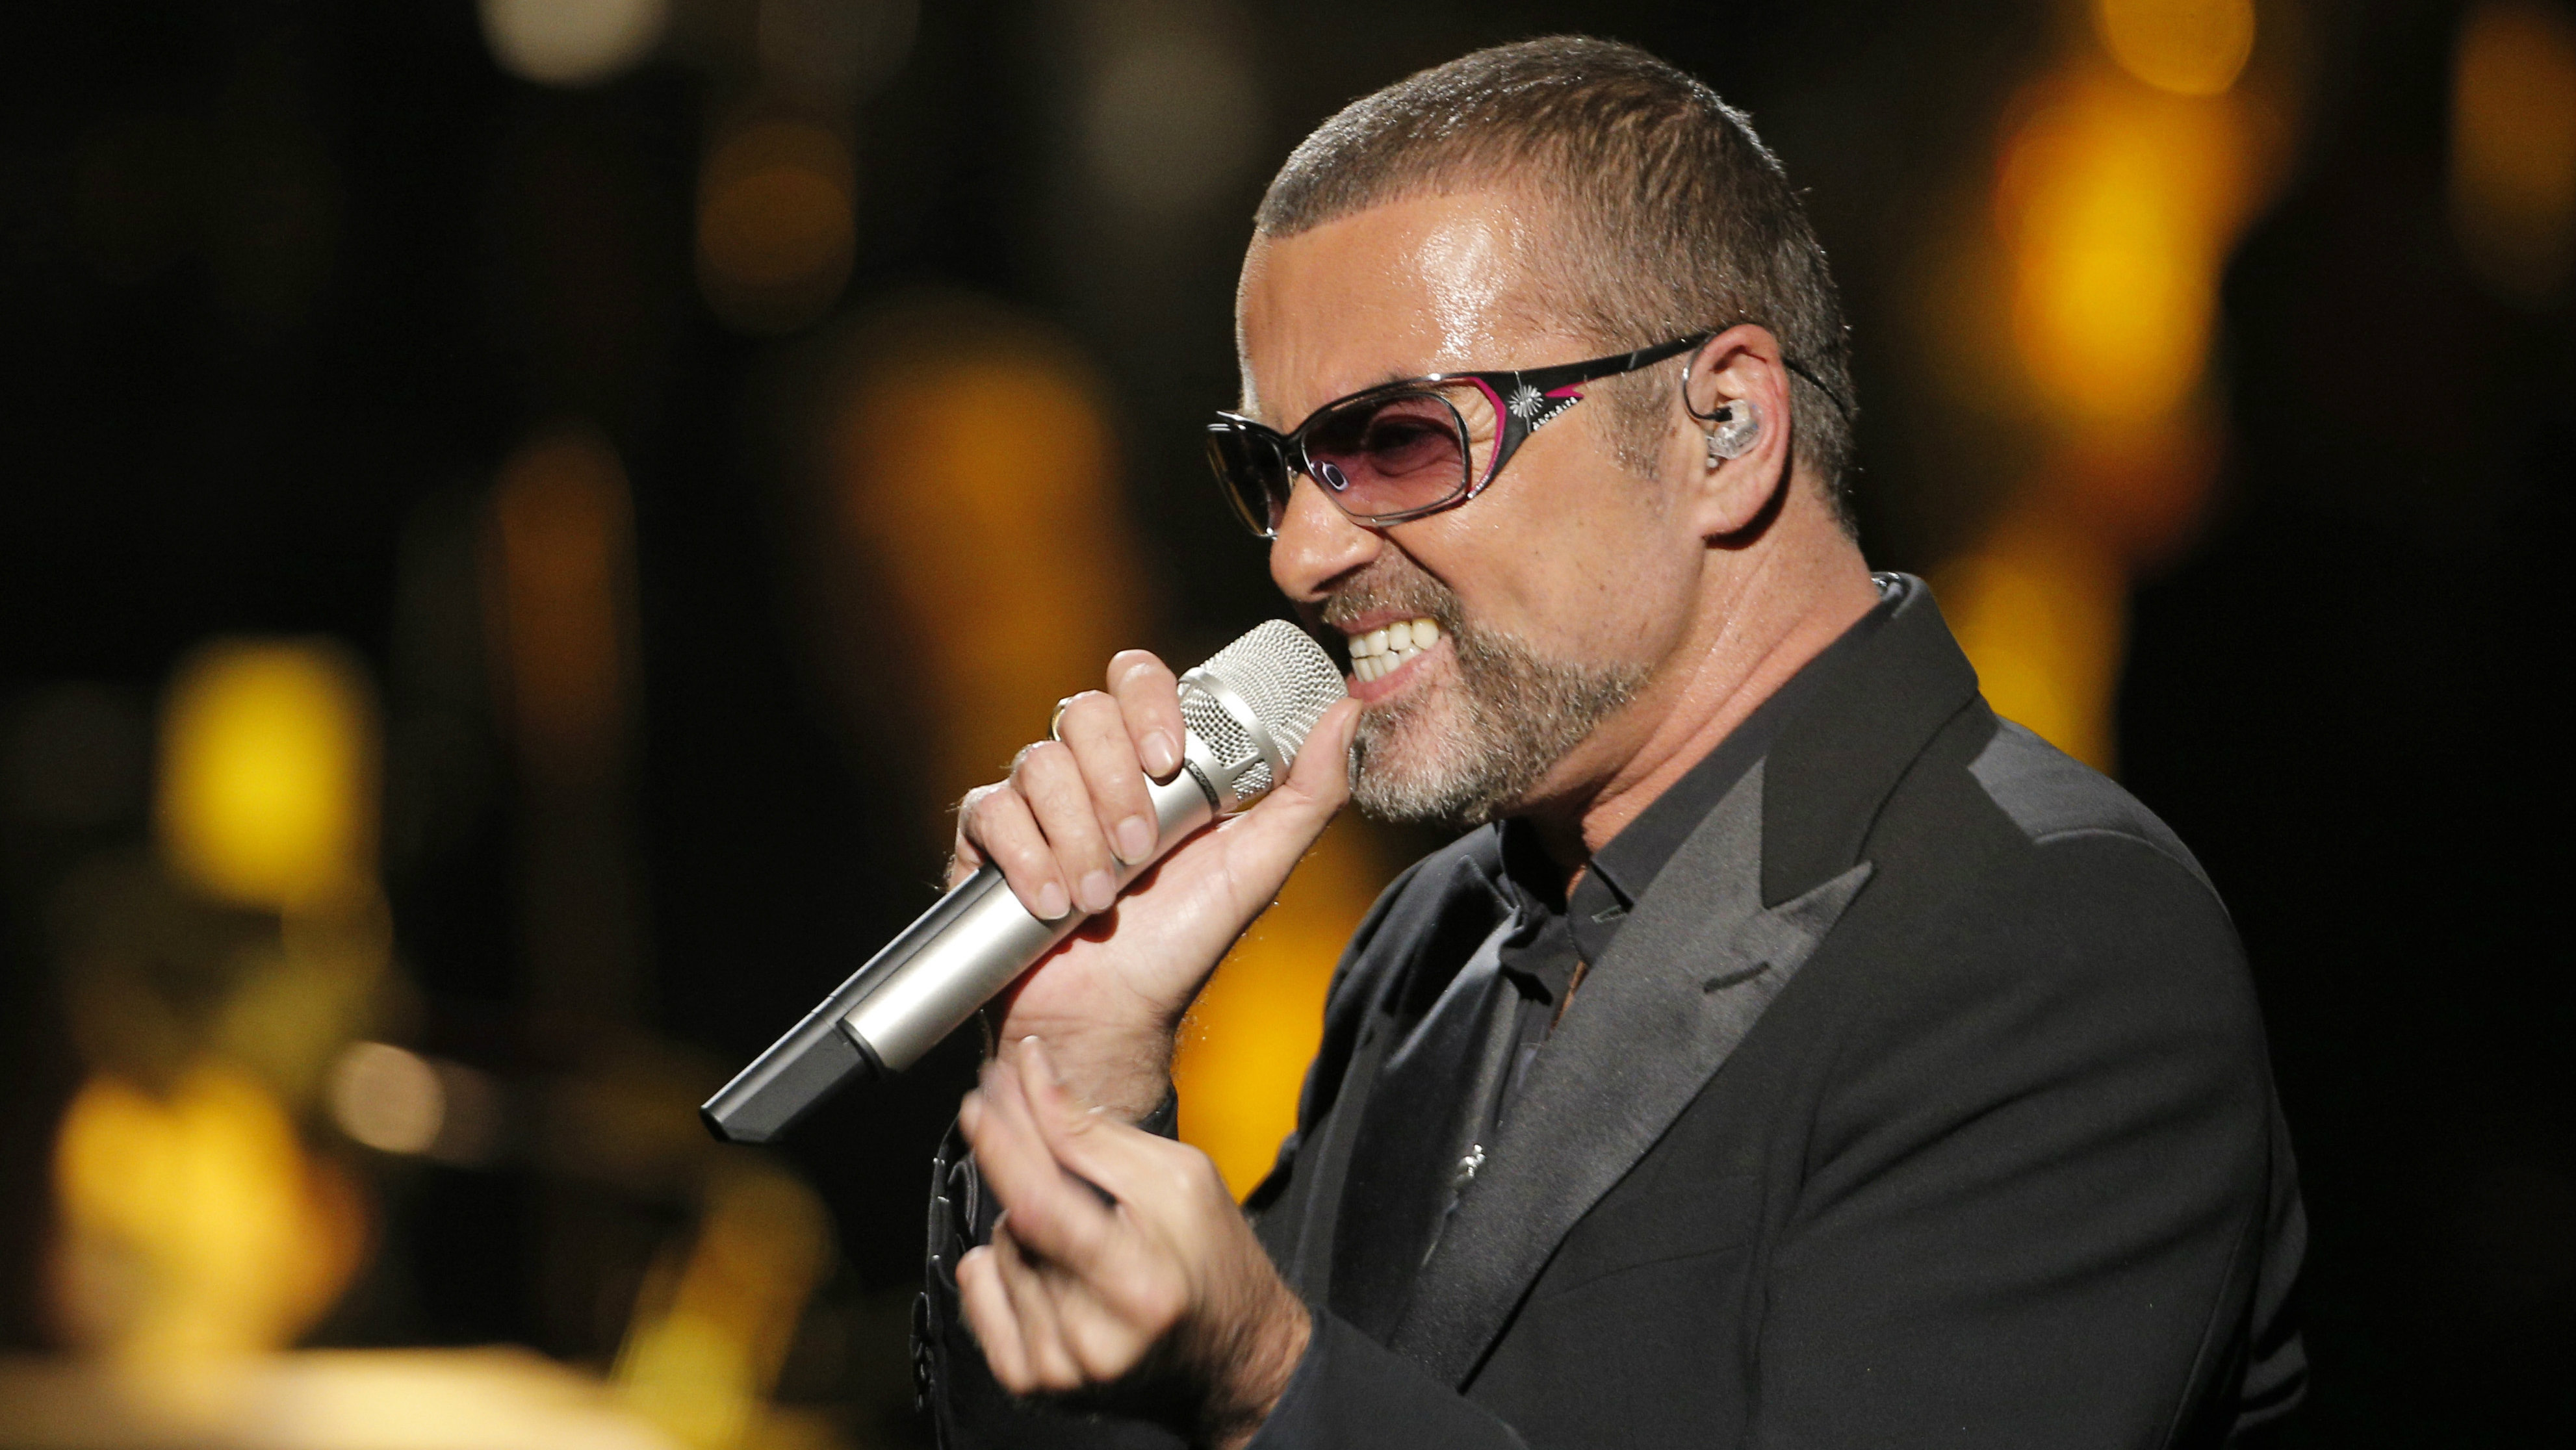 British singer George Michael in concert to raise money for AIDS charity Sidaction, in Paris, France in 2012.